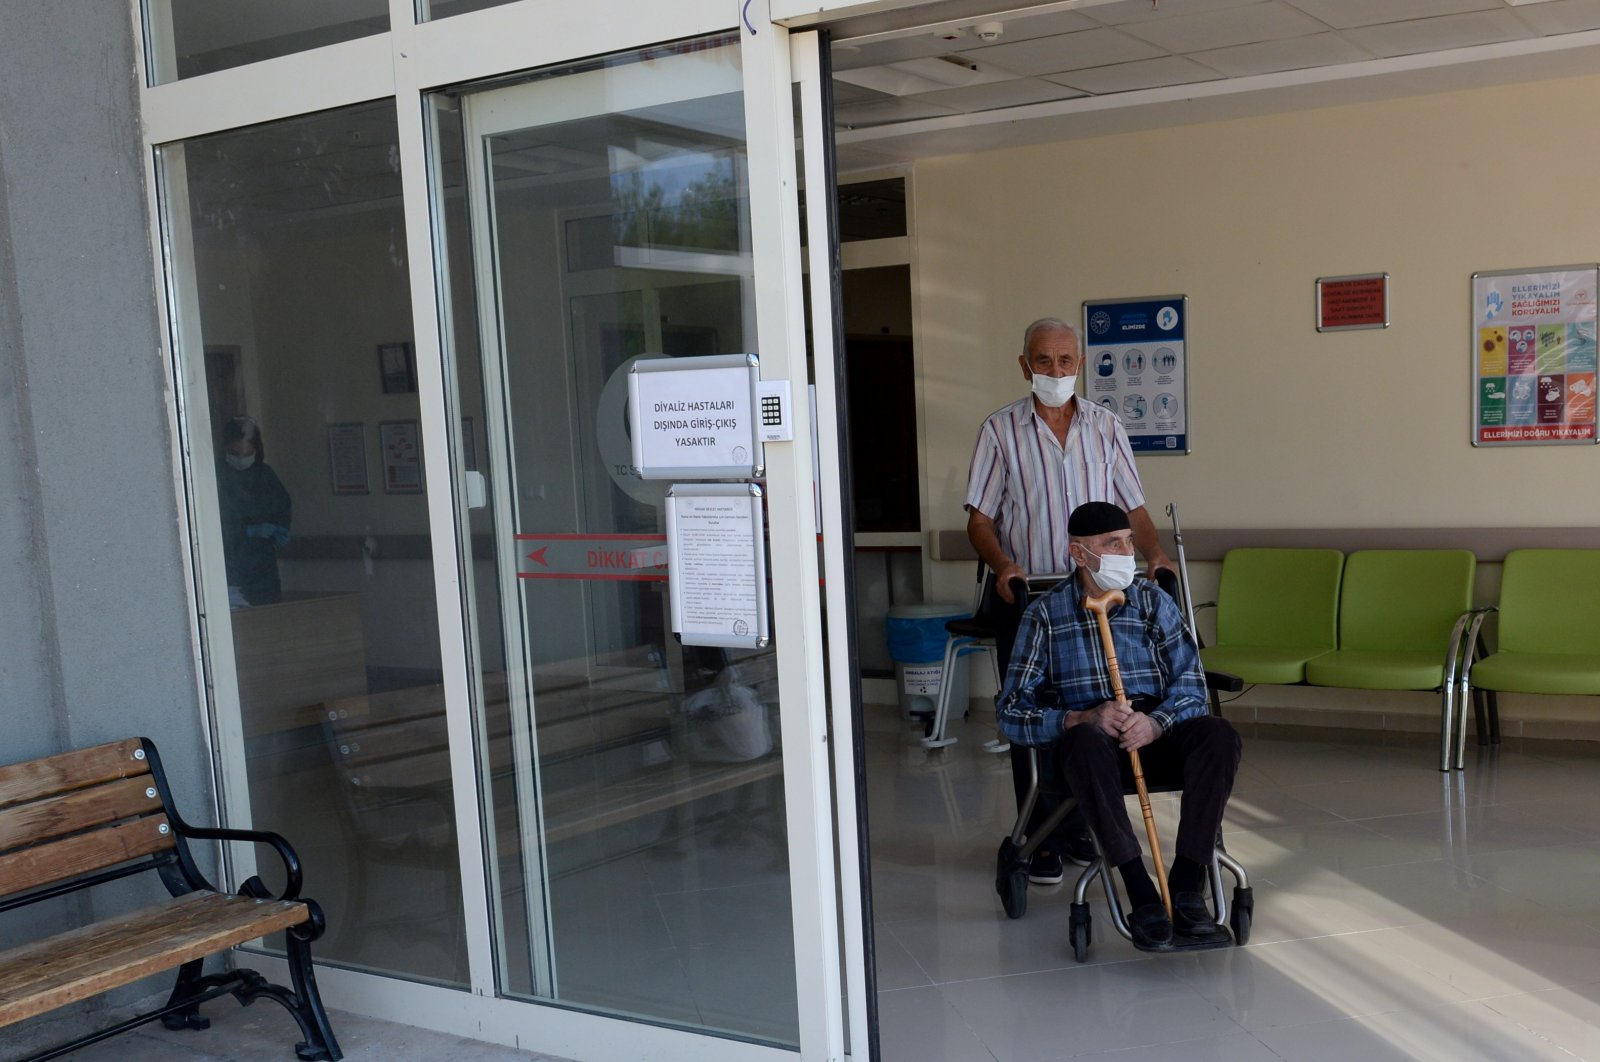 Kurteş Sap (standing) and his dad Şaban Sap leave the hospital after testing negative for COVID-19, in Tokat province's Niksar district, northern Turkey, Sept. 8, 2020. (AA Photo)